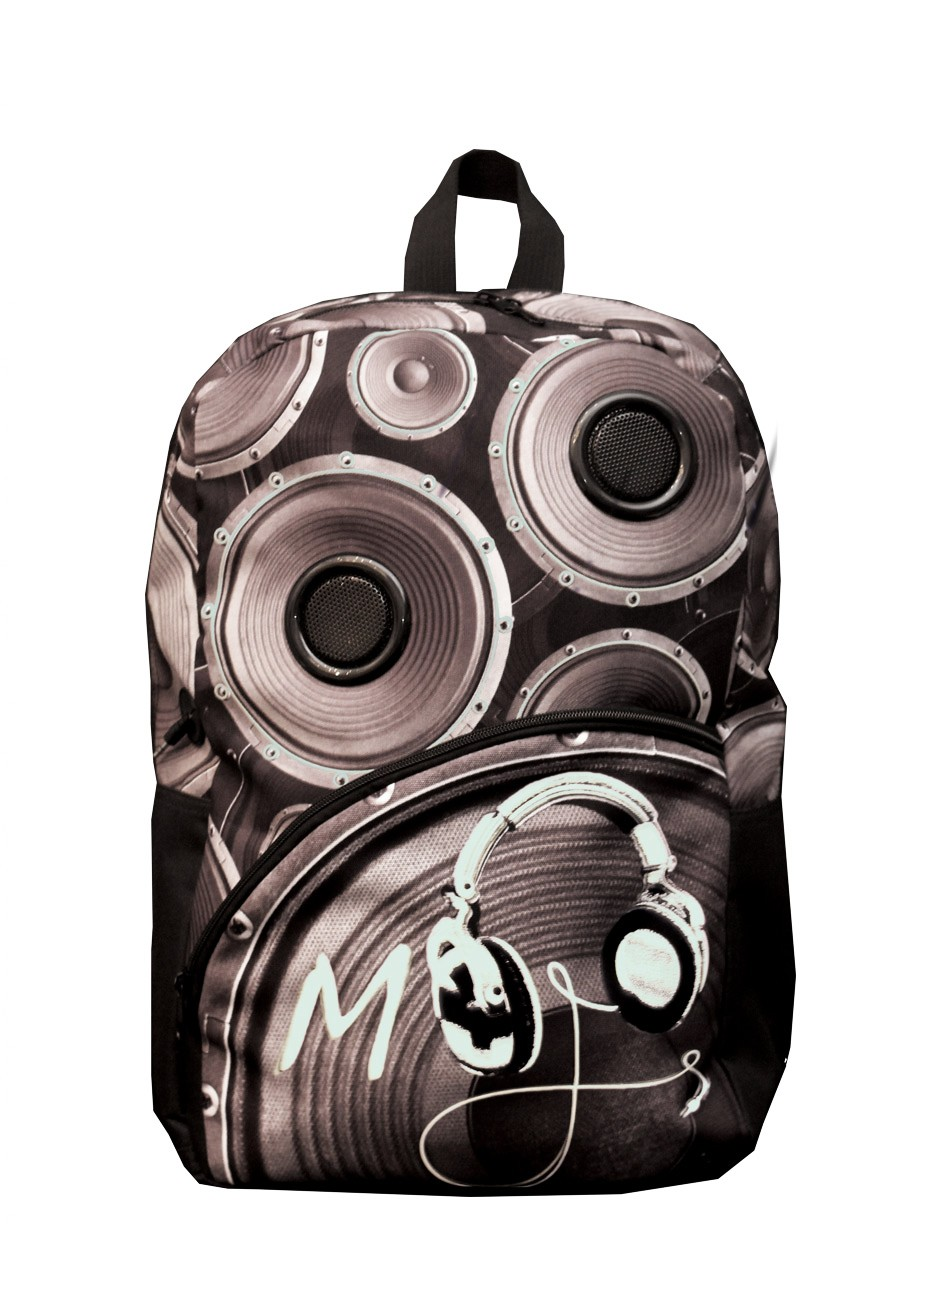 MOJO Backpacks_Masta Blasta